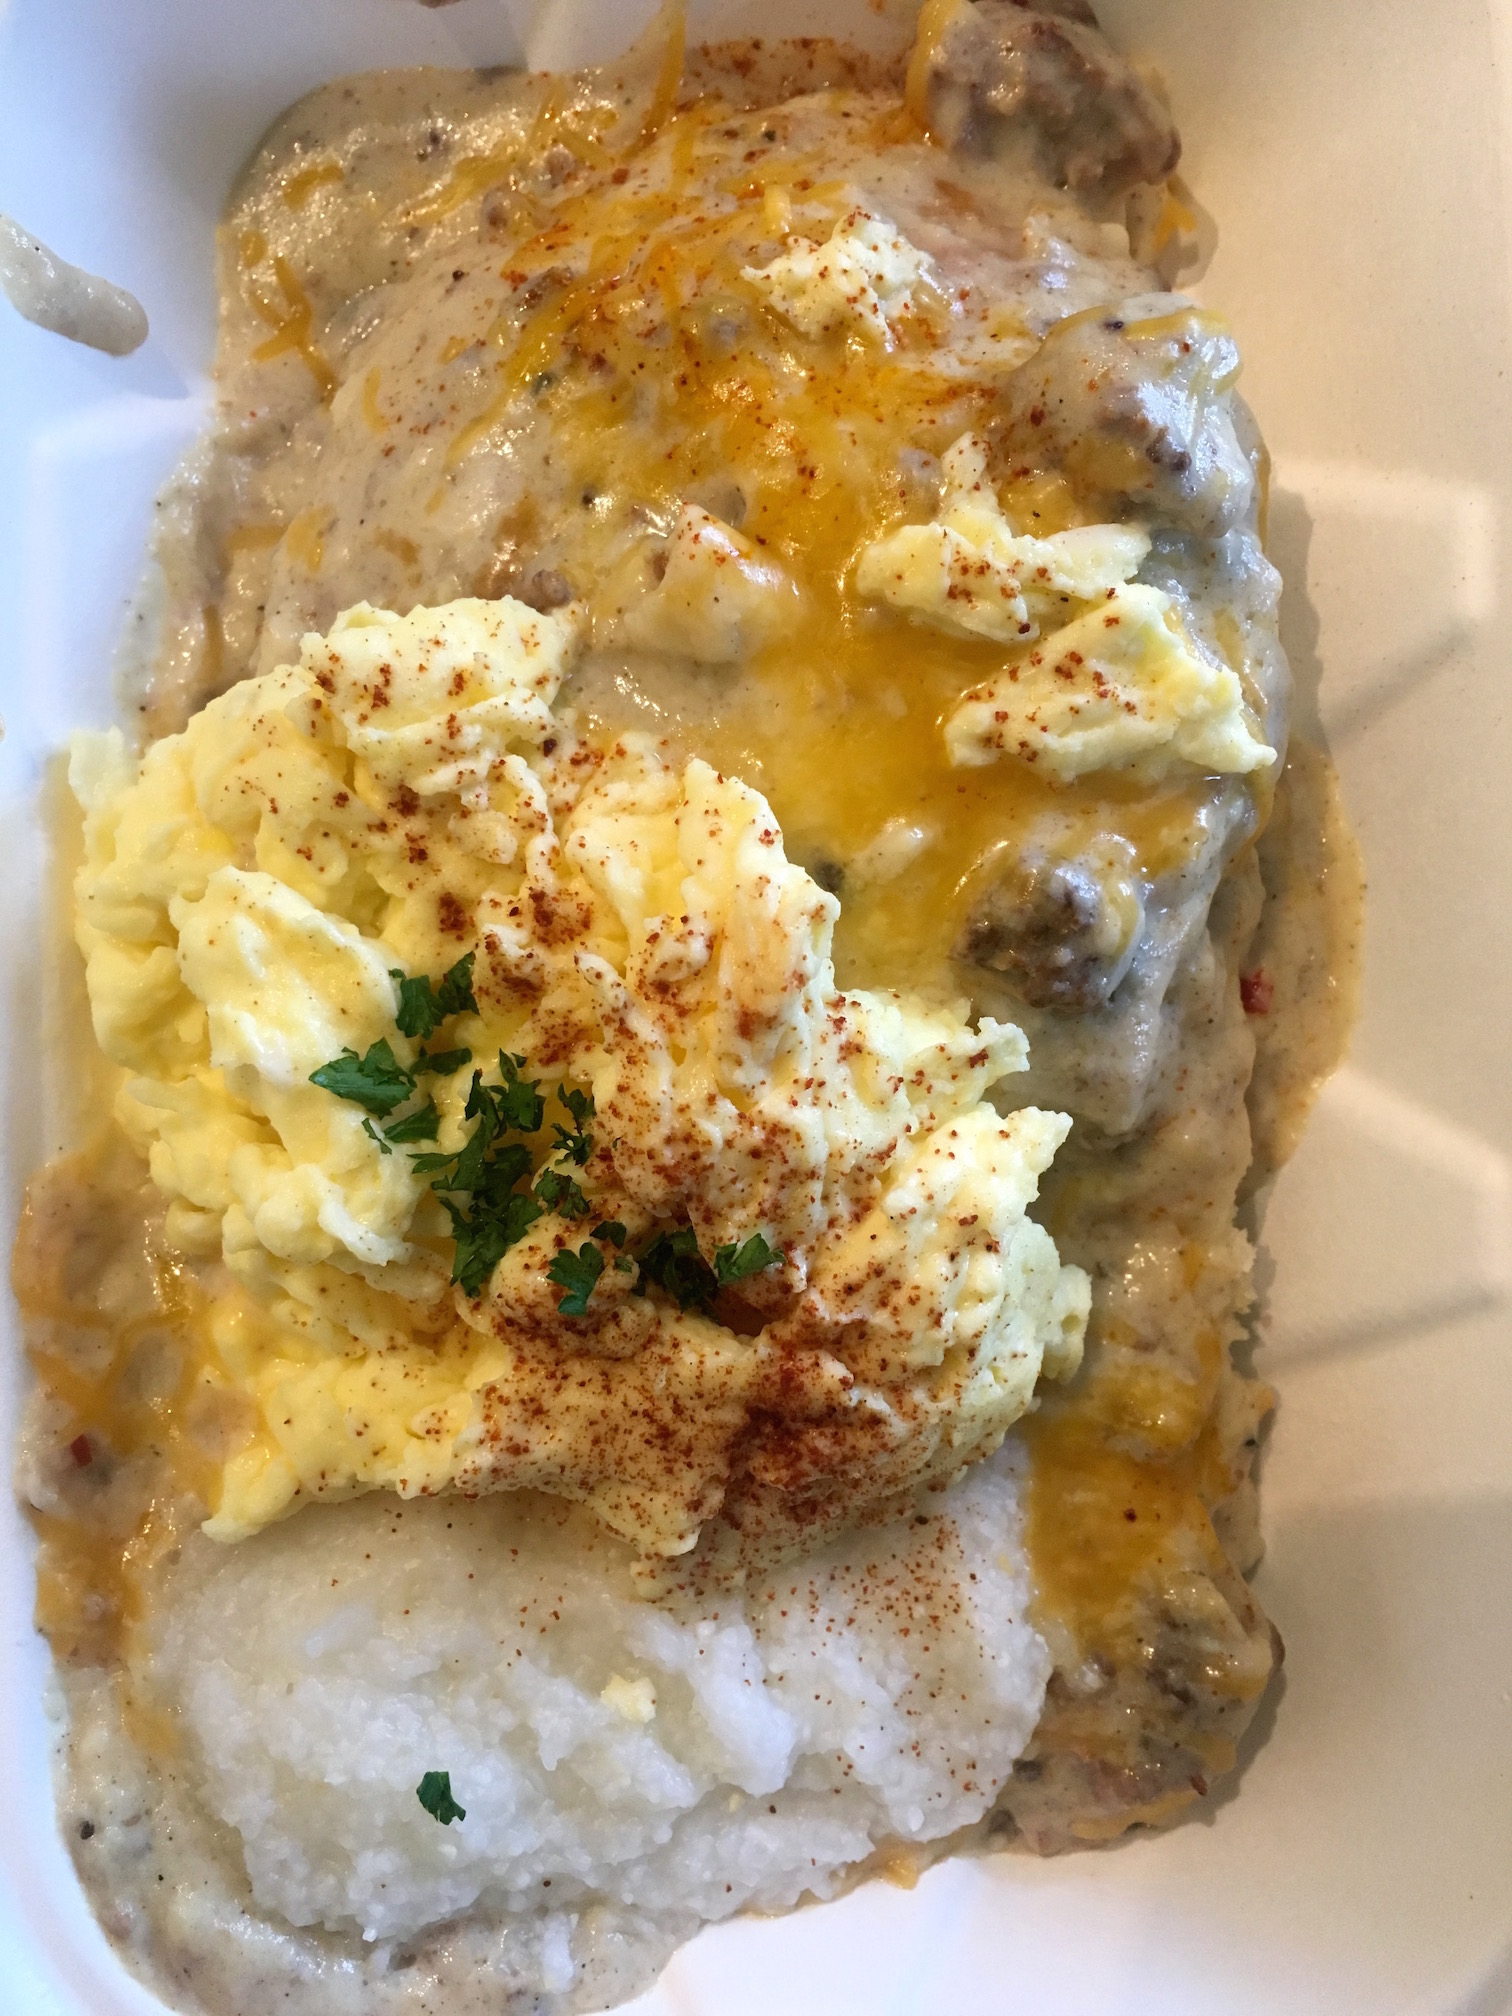 Gritty Scrambled Cheesy Bitch at Biscuit Bitch